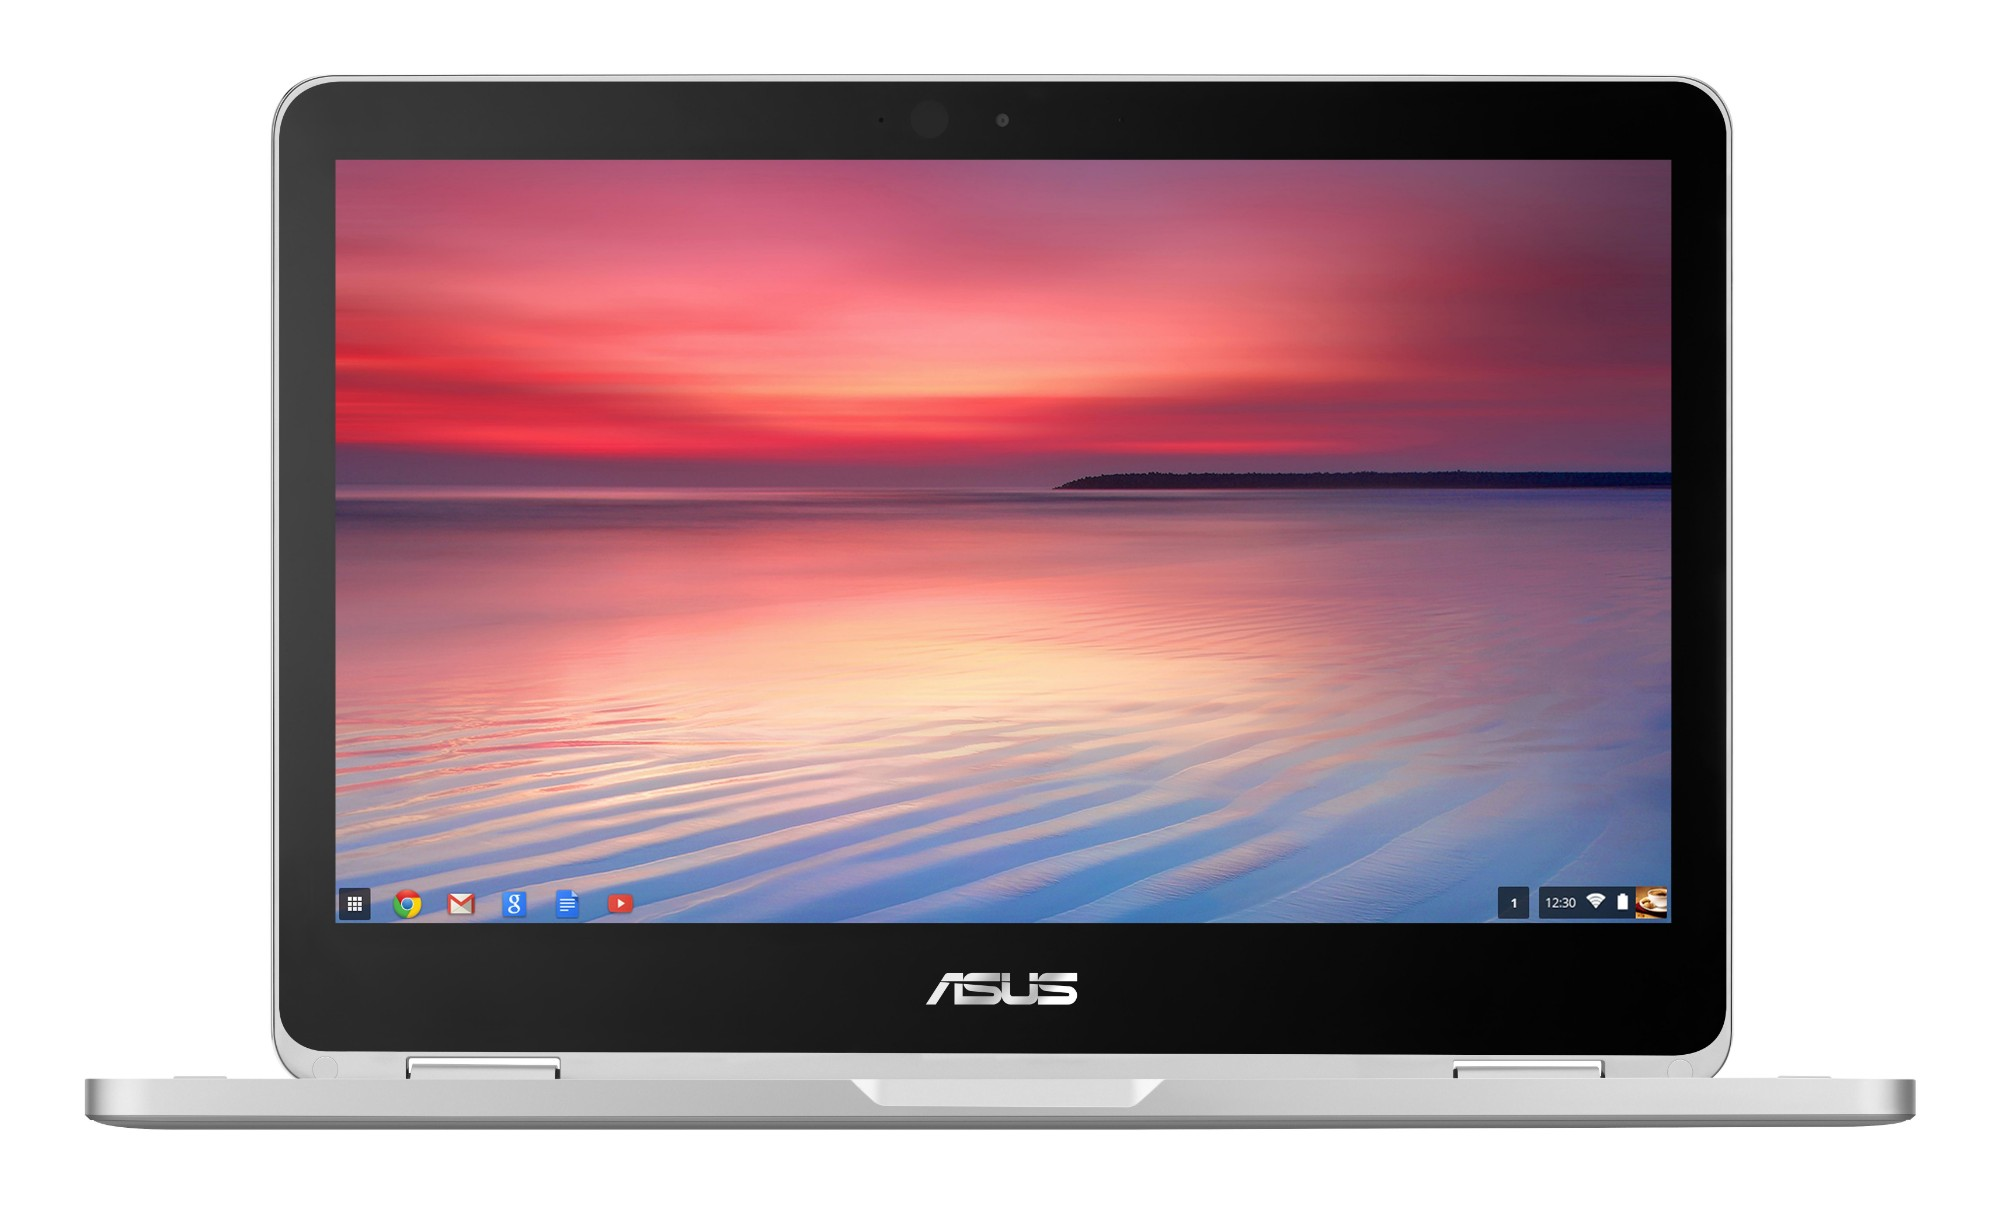 ASUS Chromebook Flip C302CA GU017 - Flip design - Core m7 6Y75 / 1.2 GHz - Chrome OS - 8 GB RAM - 64